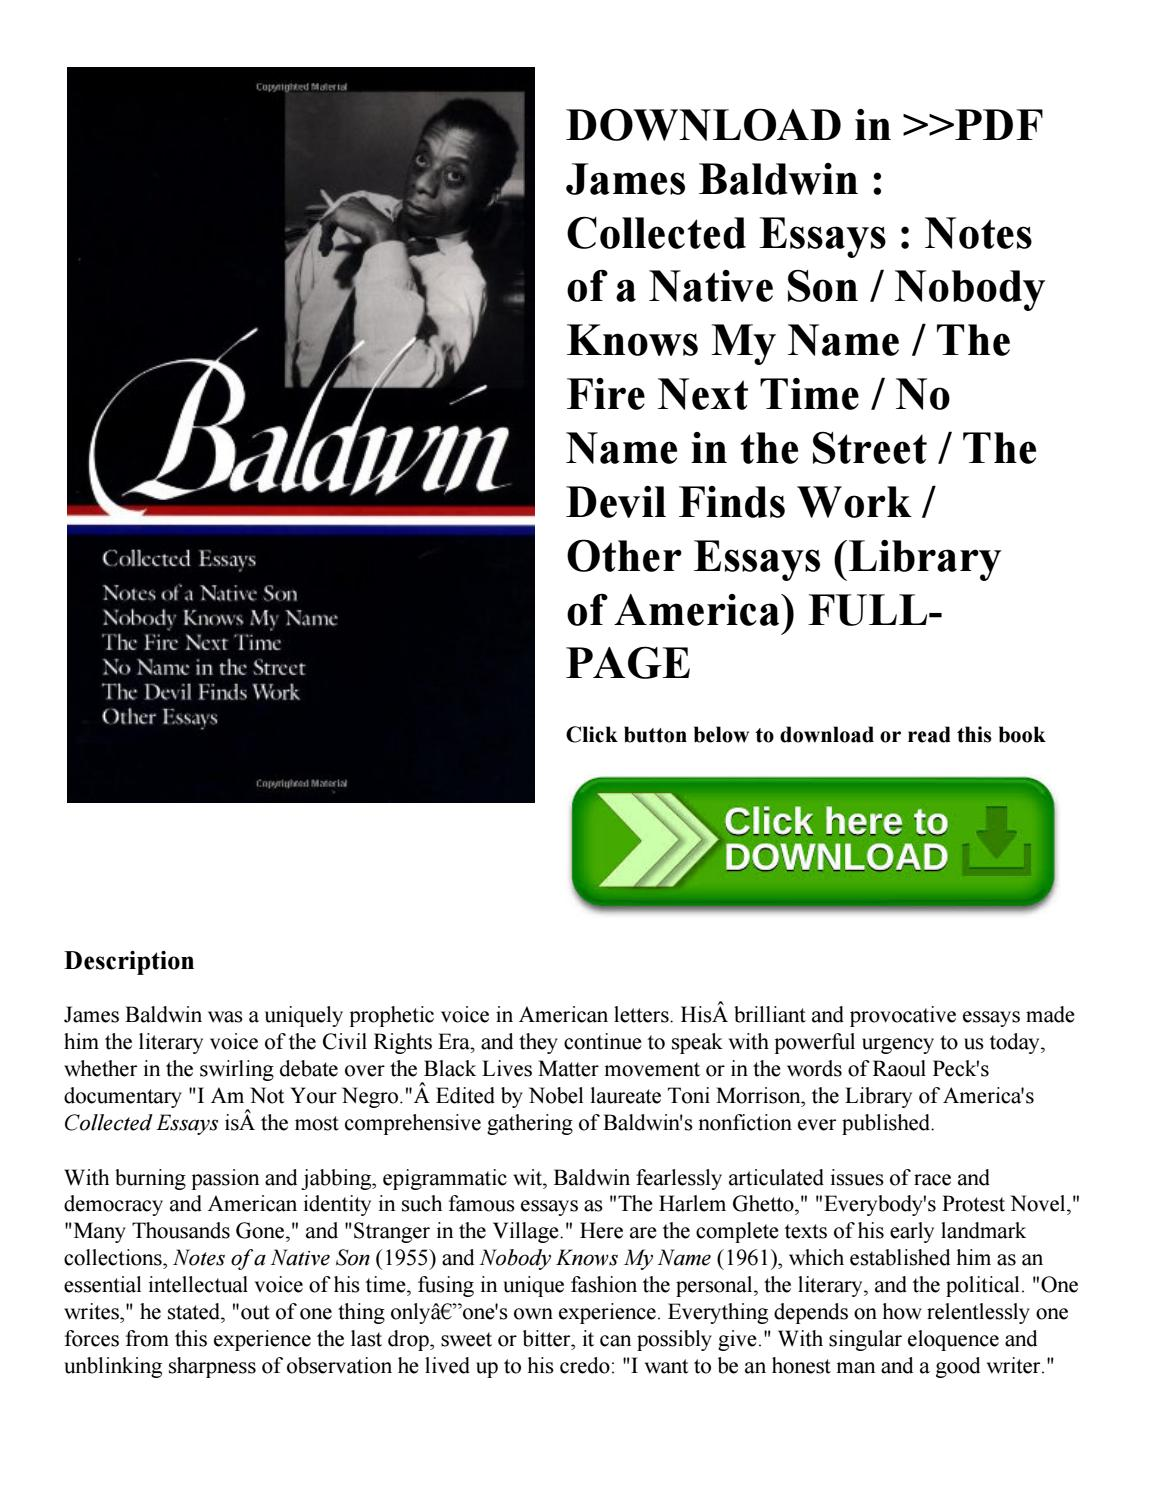 005 Essay Example James Baldwin Collected Essays Page 1 Wondrous Table Of Contents Ebook Google Books Full